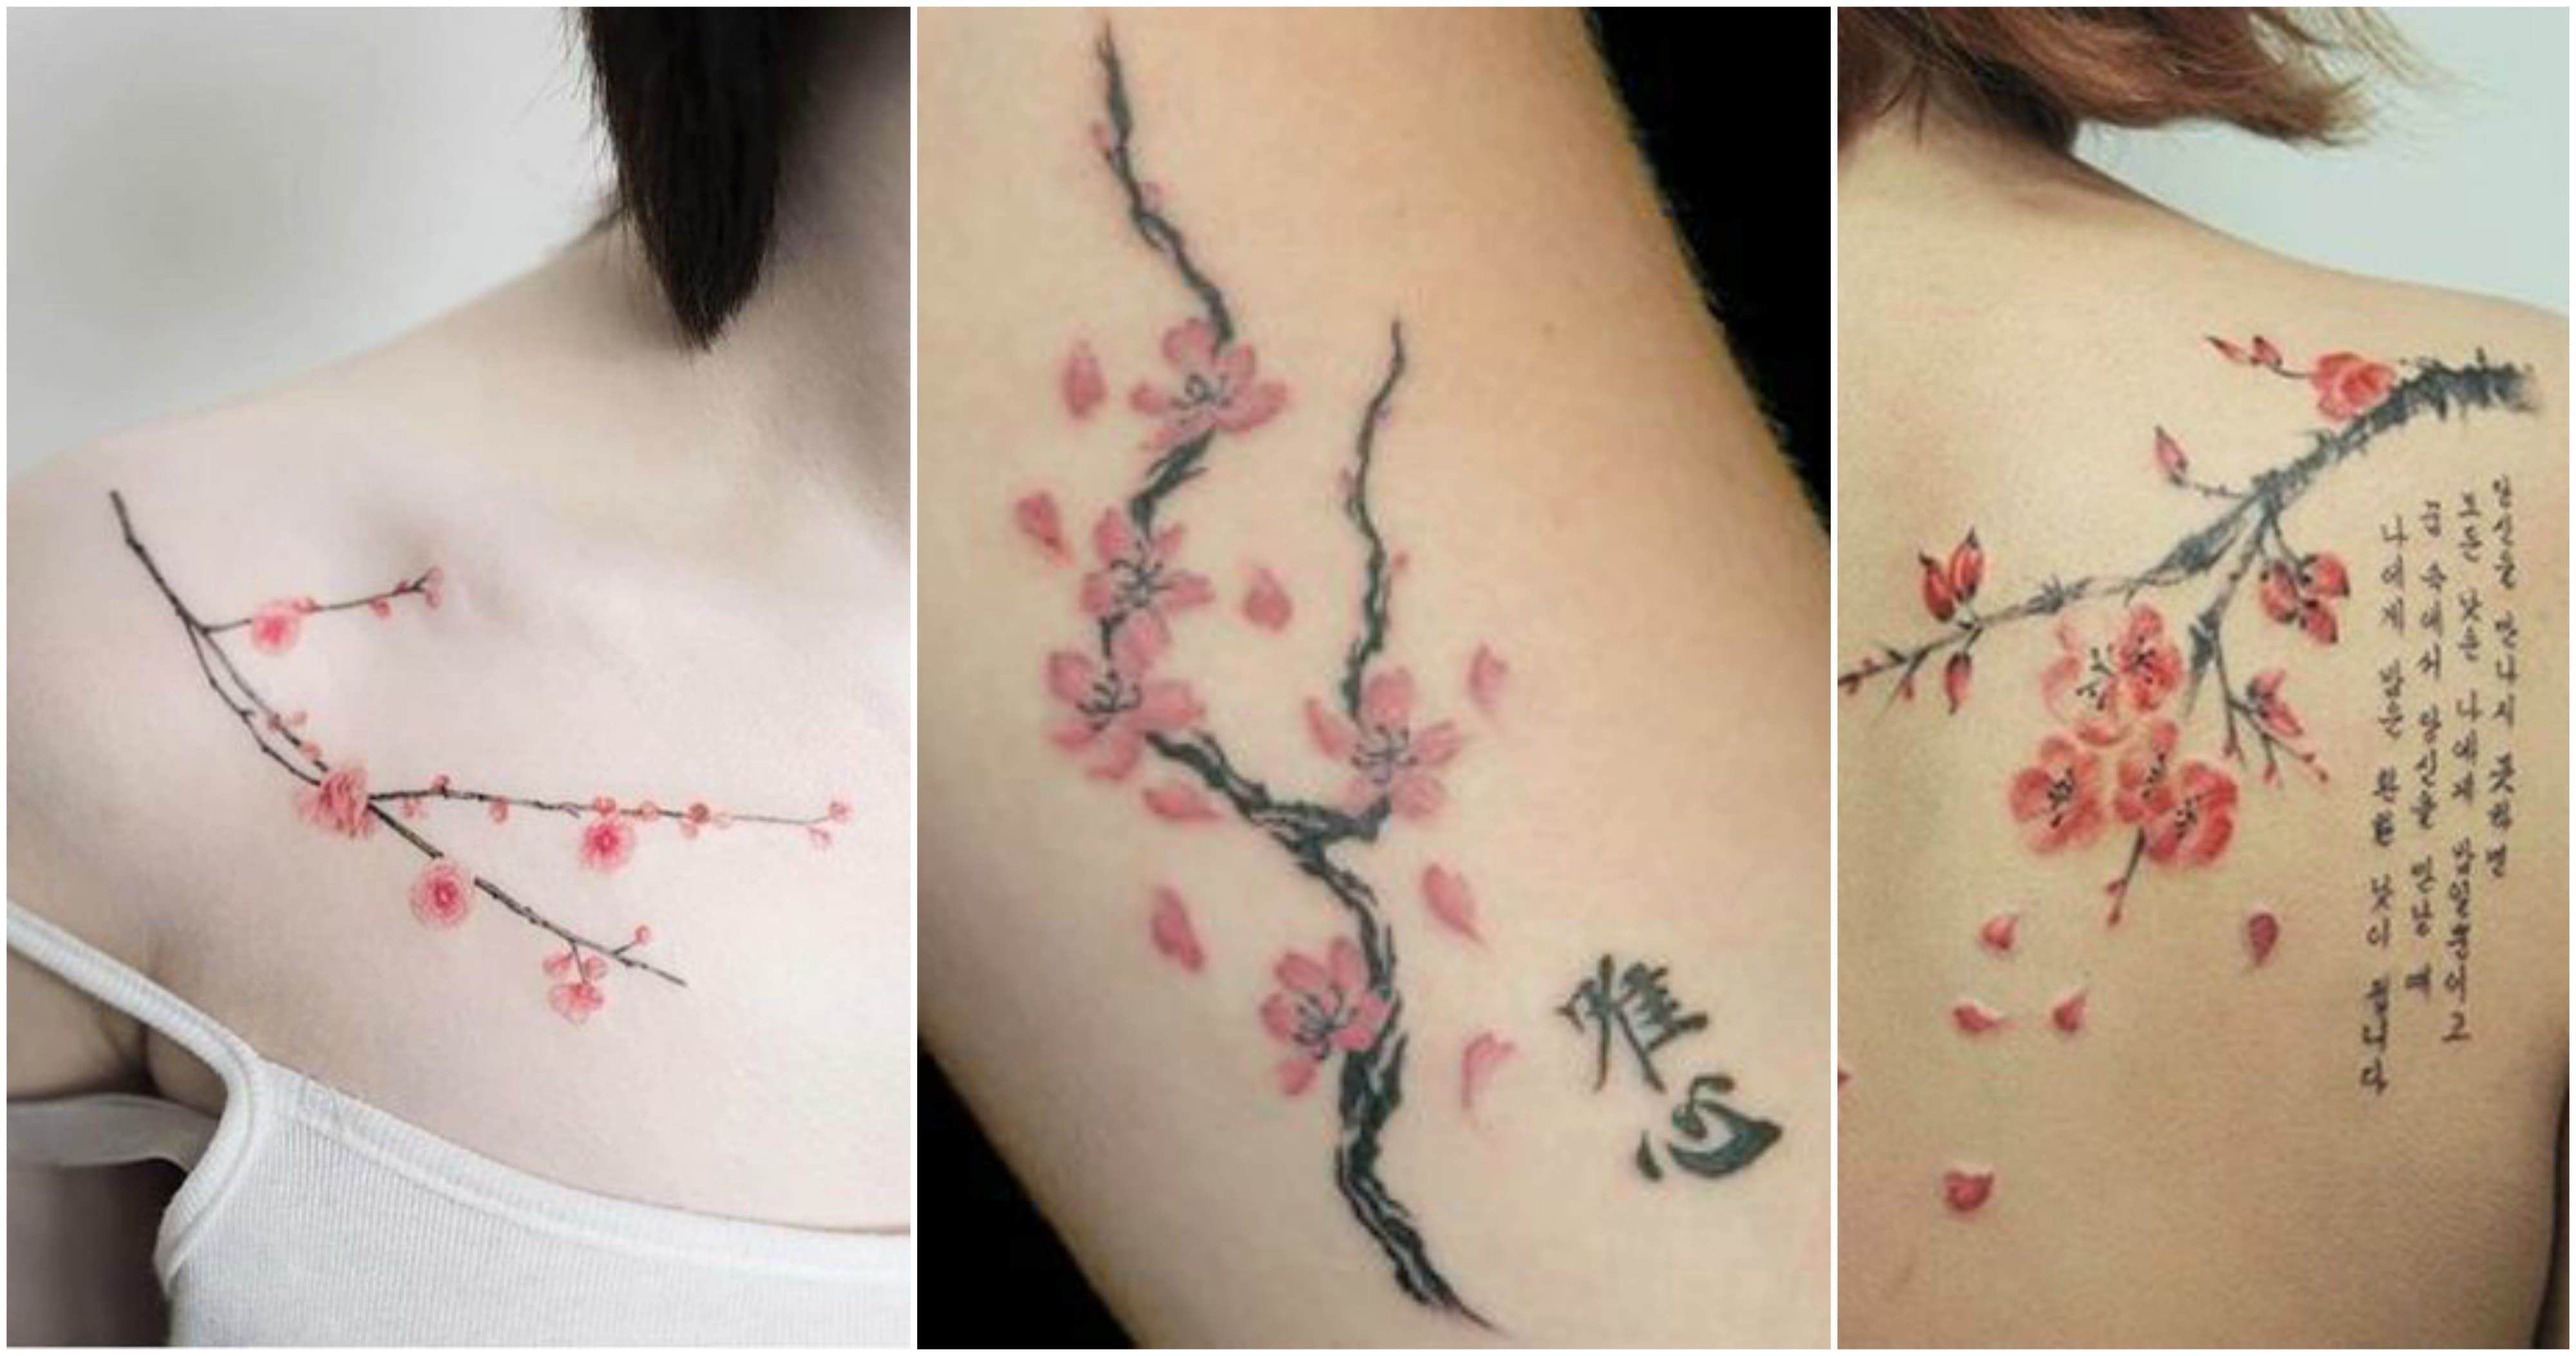 Uncover The Deep Meaning Of A Cherry Blossom Tattoo Design Japanese Tattoo Cherry Blossom Blossom Tattoo Cherry Blossom Tattoo